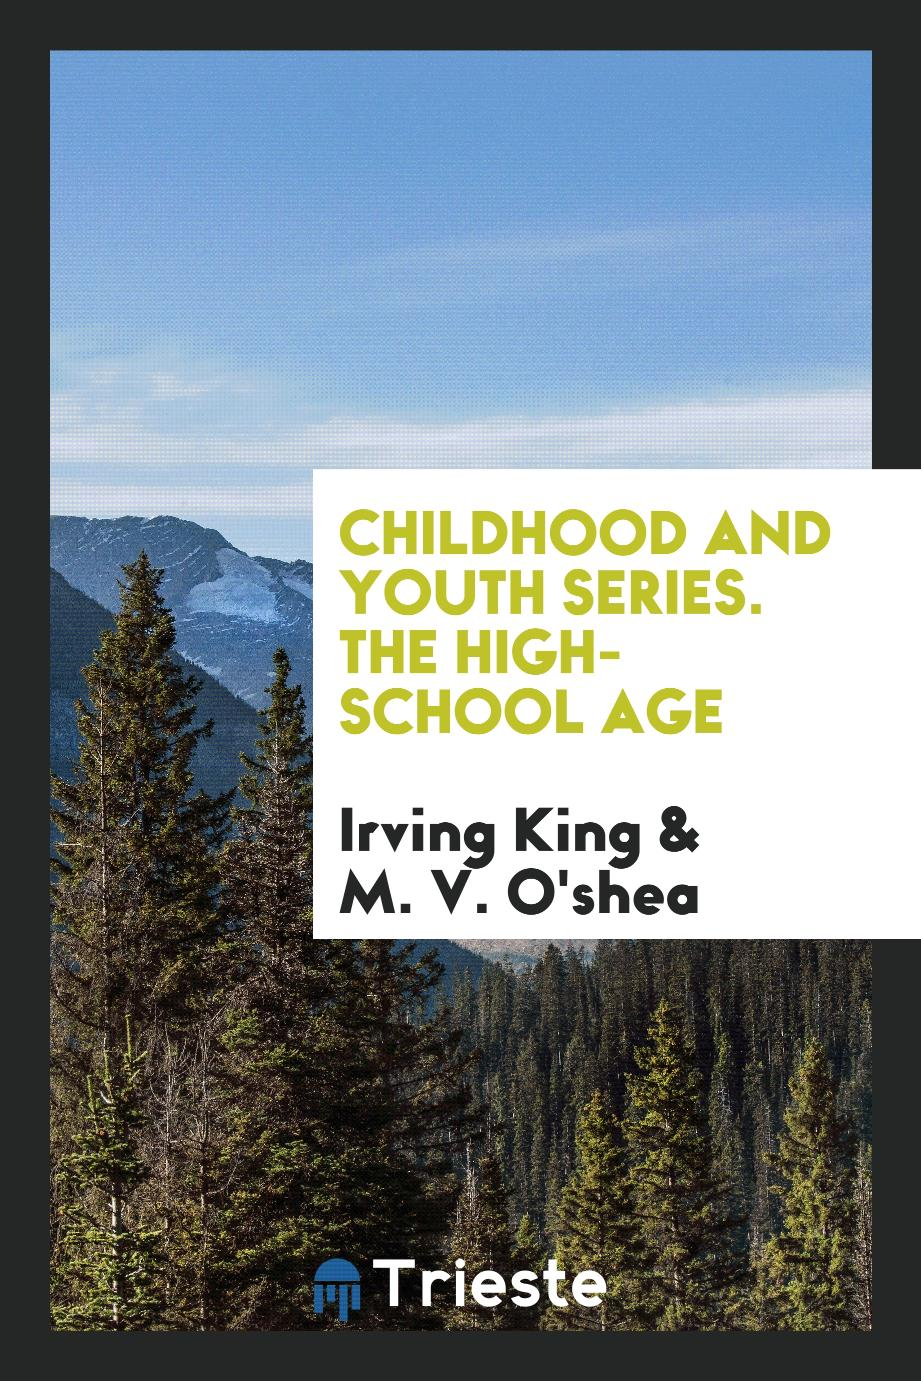 Childhood and Youth Series. The High-School Age